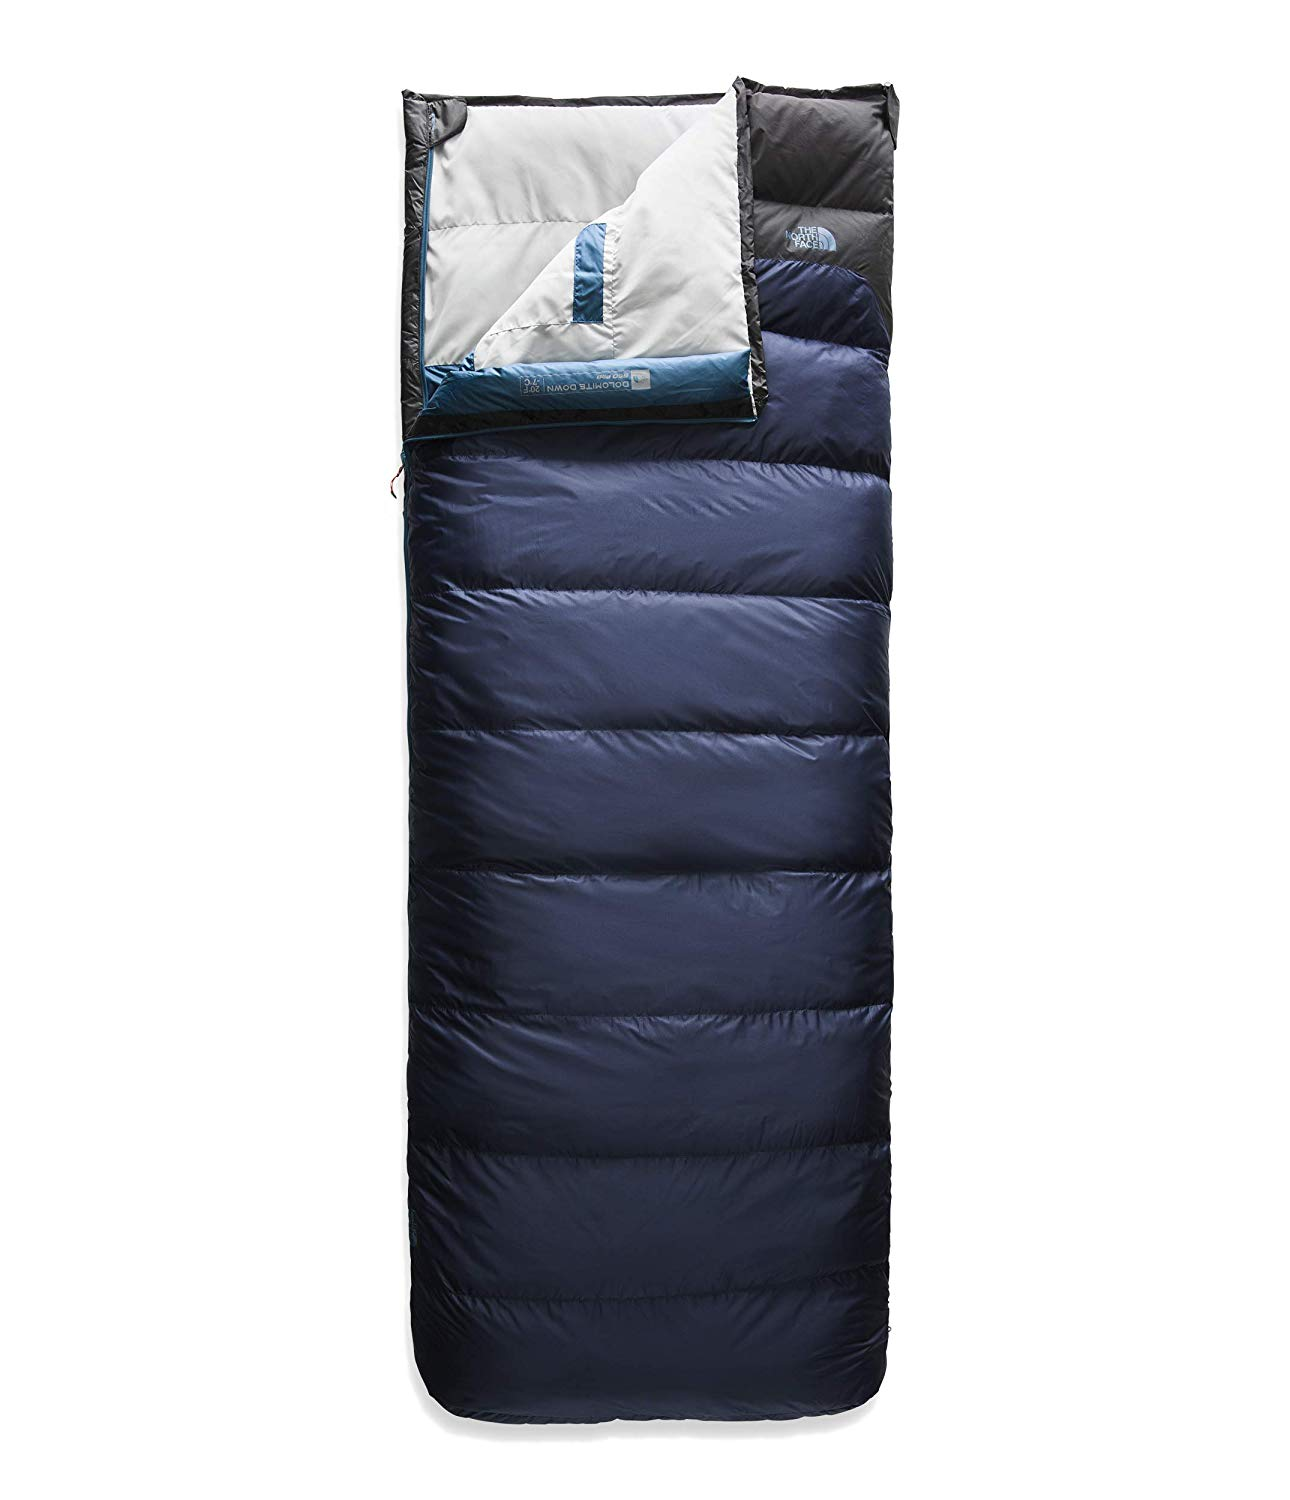 An image related to Dolomite Polyester Taffeta Sleeping Bag from The North Face